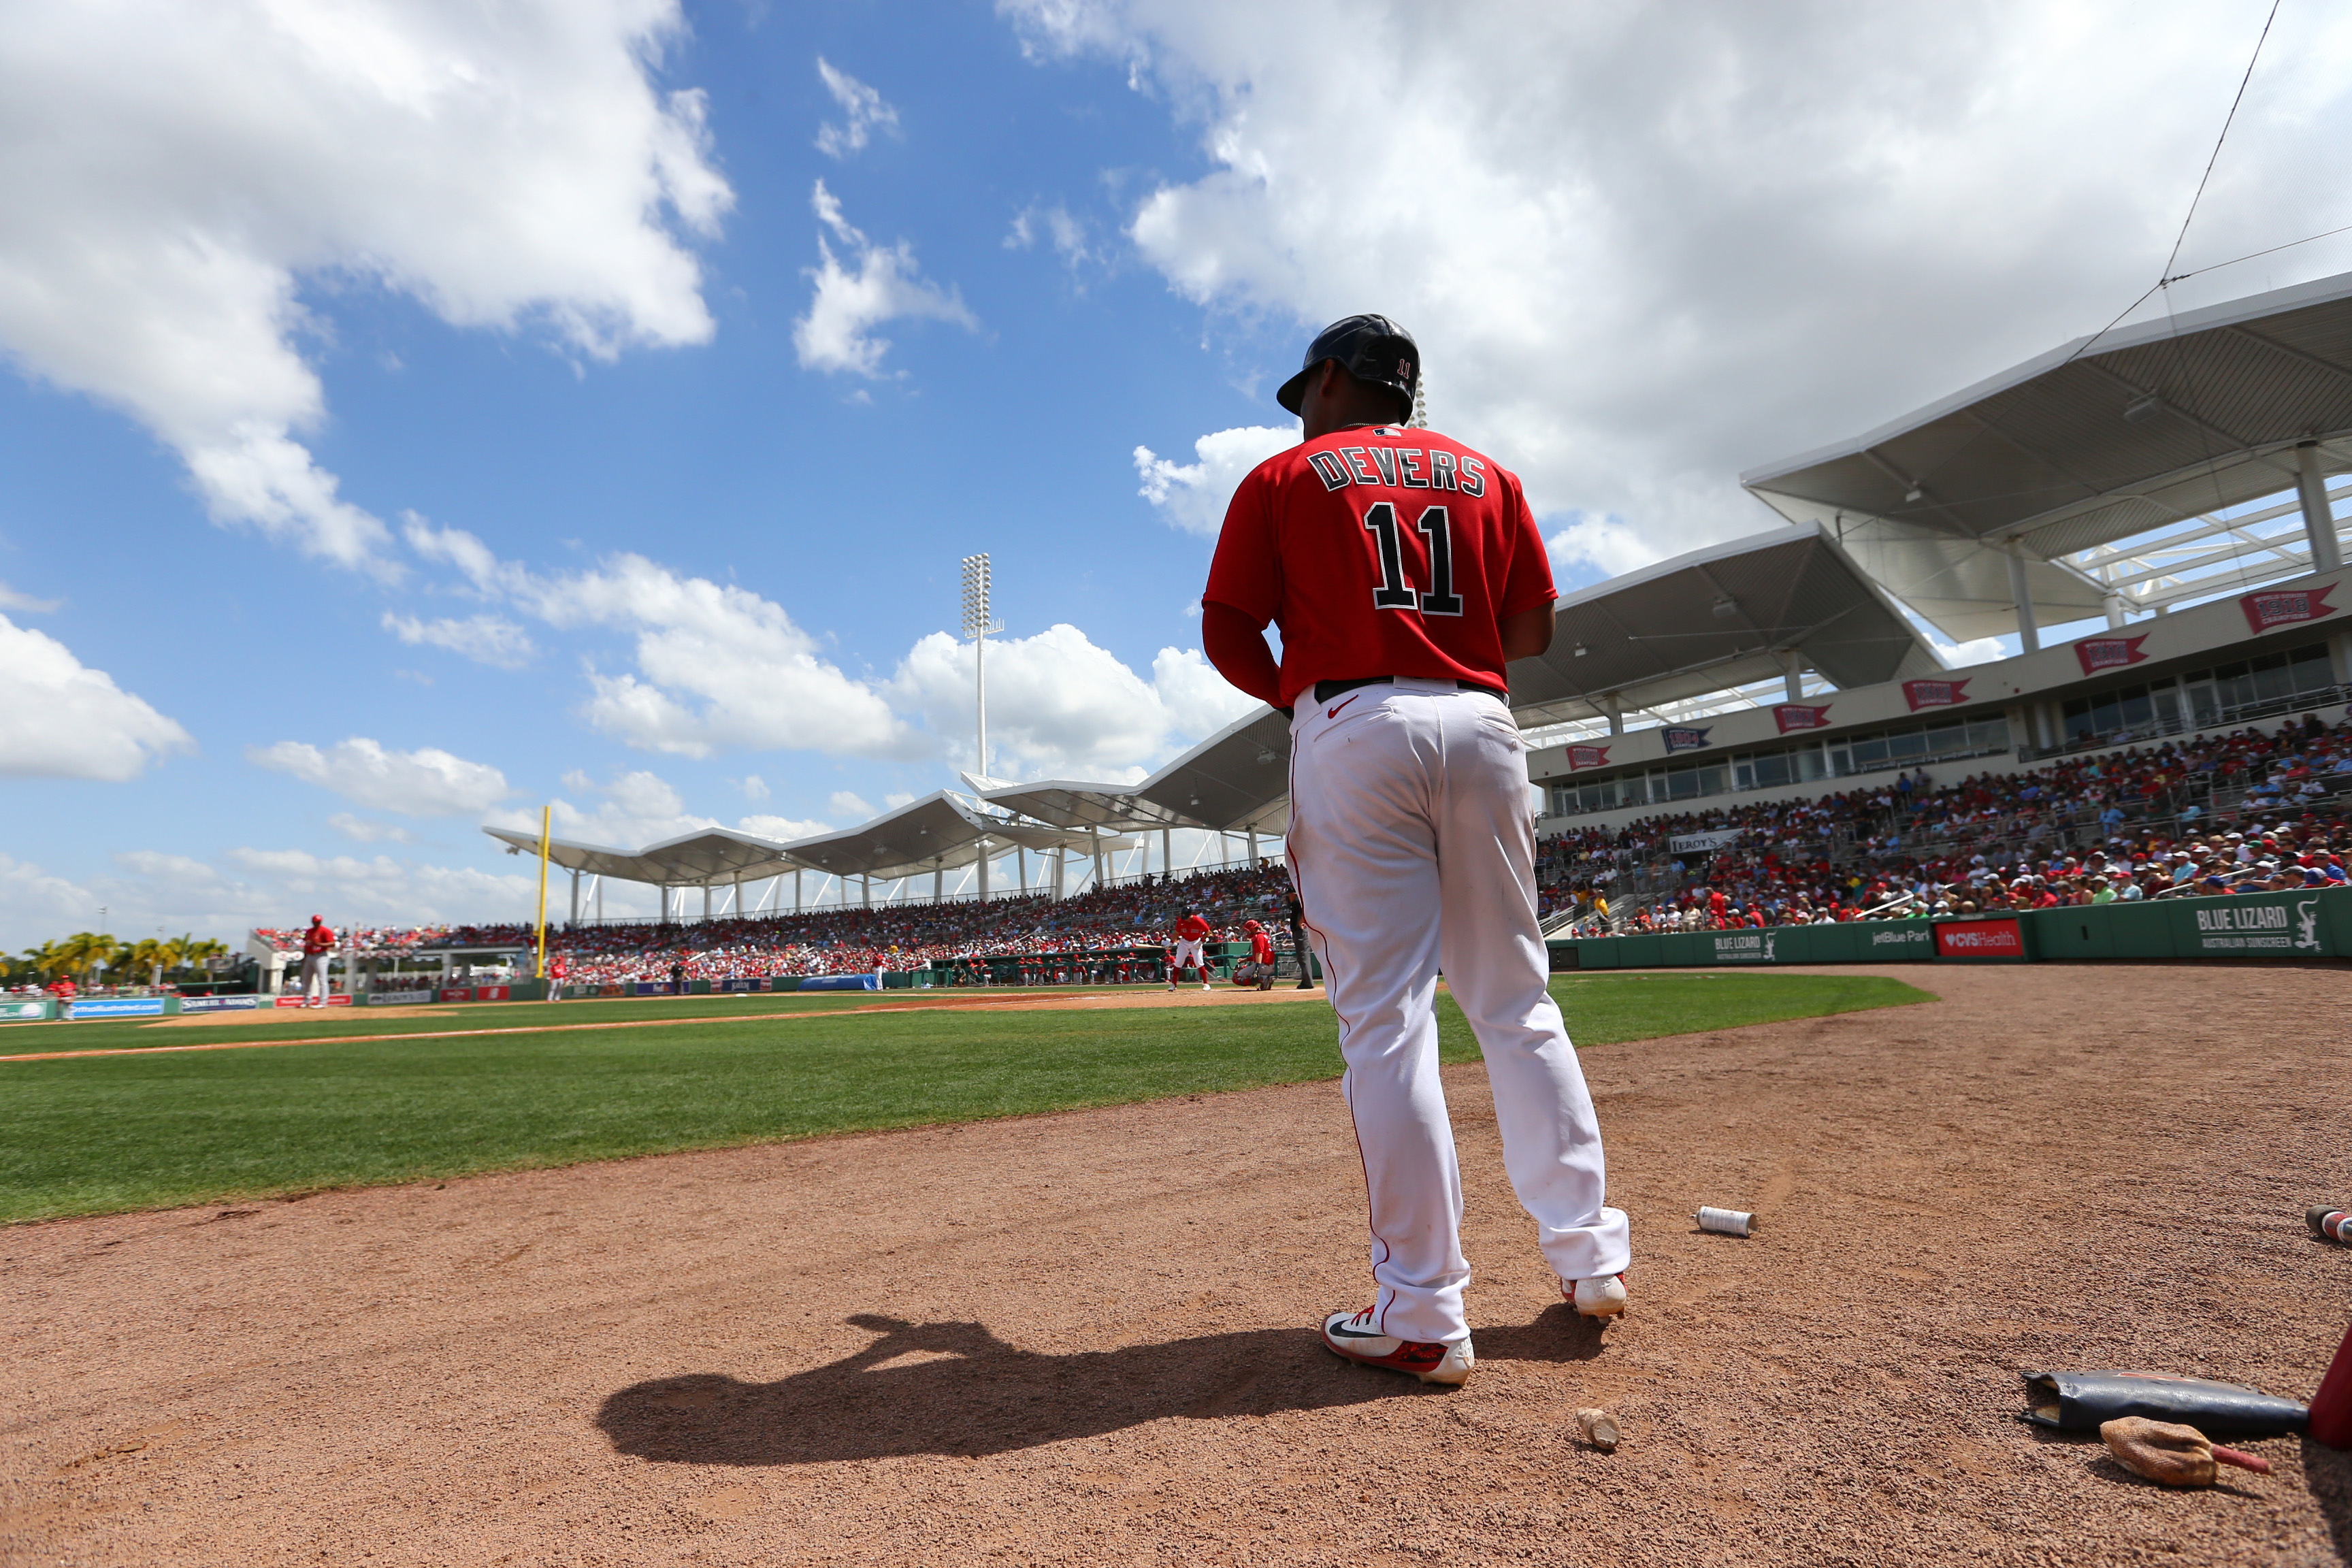 Boston Red Sox third baseman Rafael Devers (11) on deck to bat during the fourth inning against the St. Louis Cardinals at JetBlue Park.